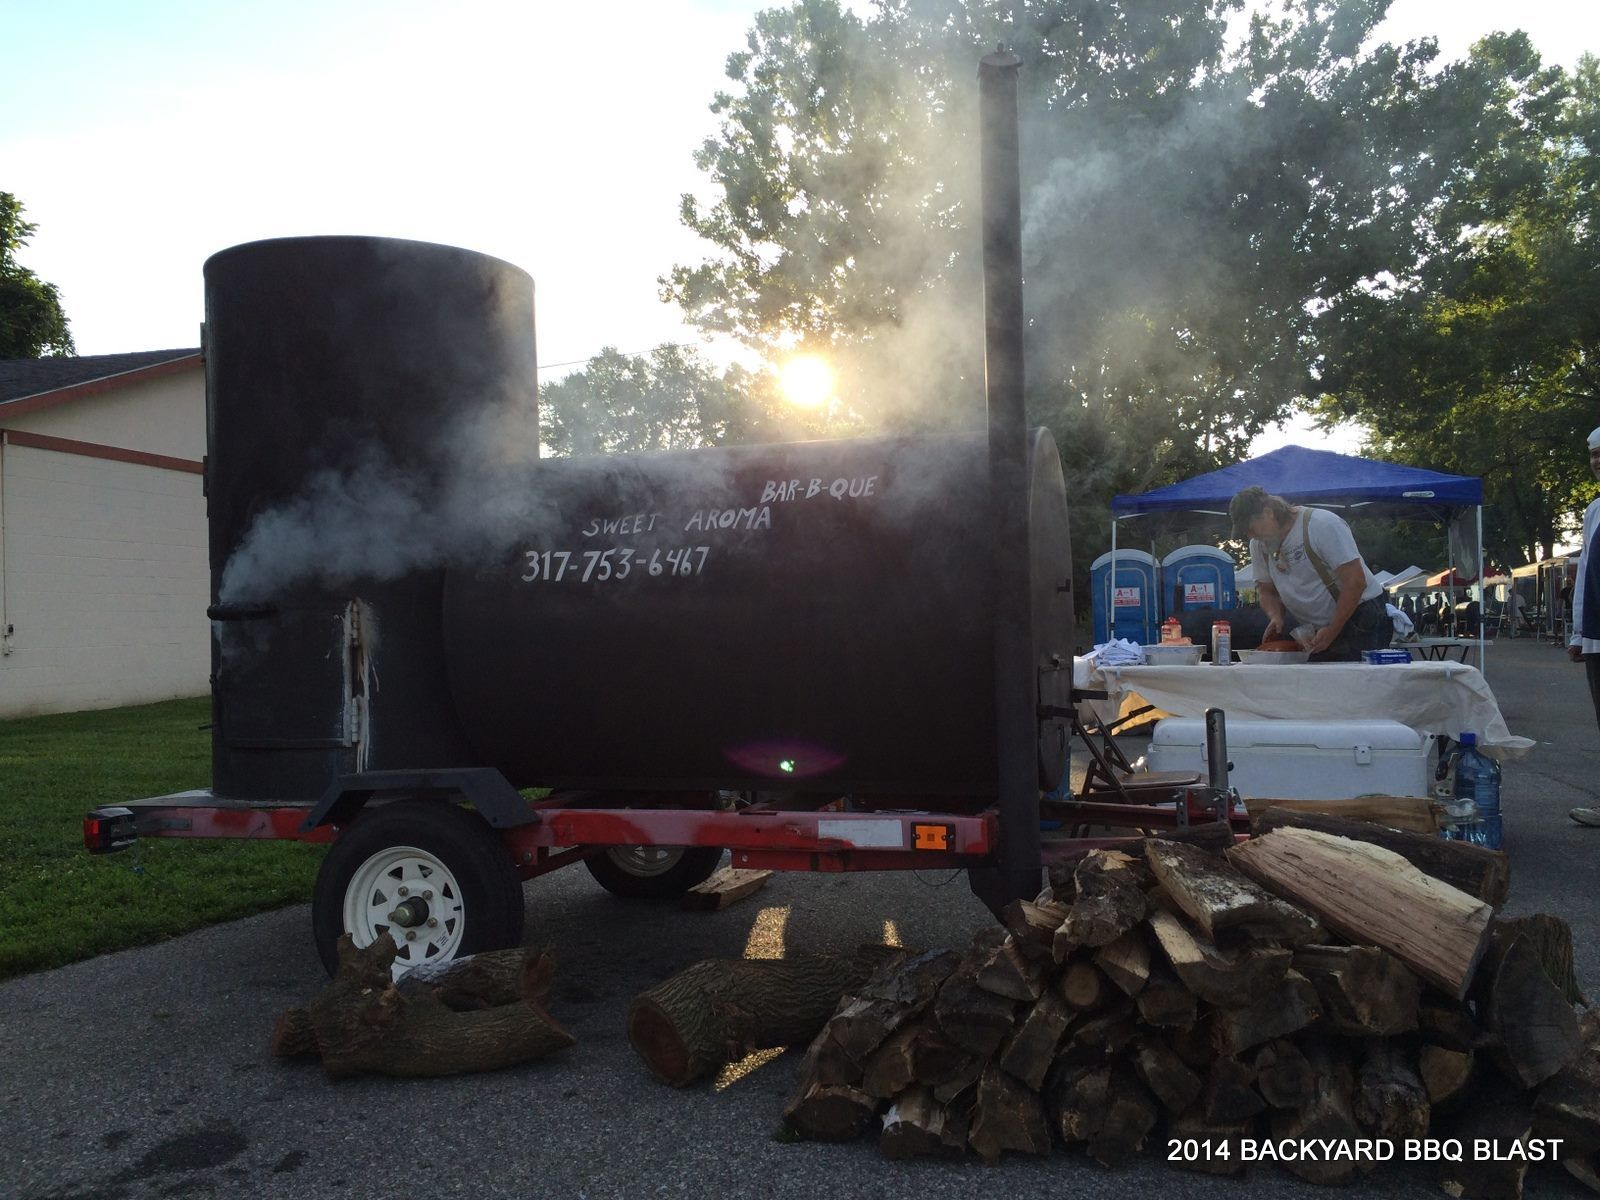 pin by madison backyard bbq blast on our bbq contraptions pinterest